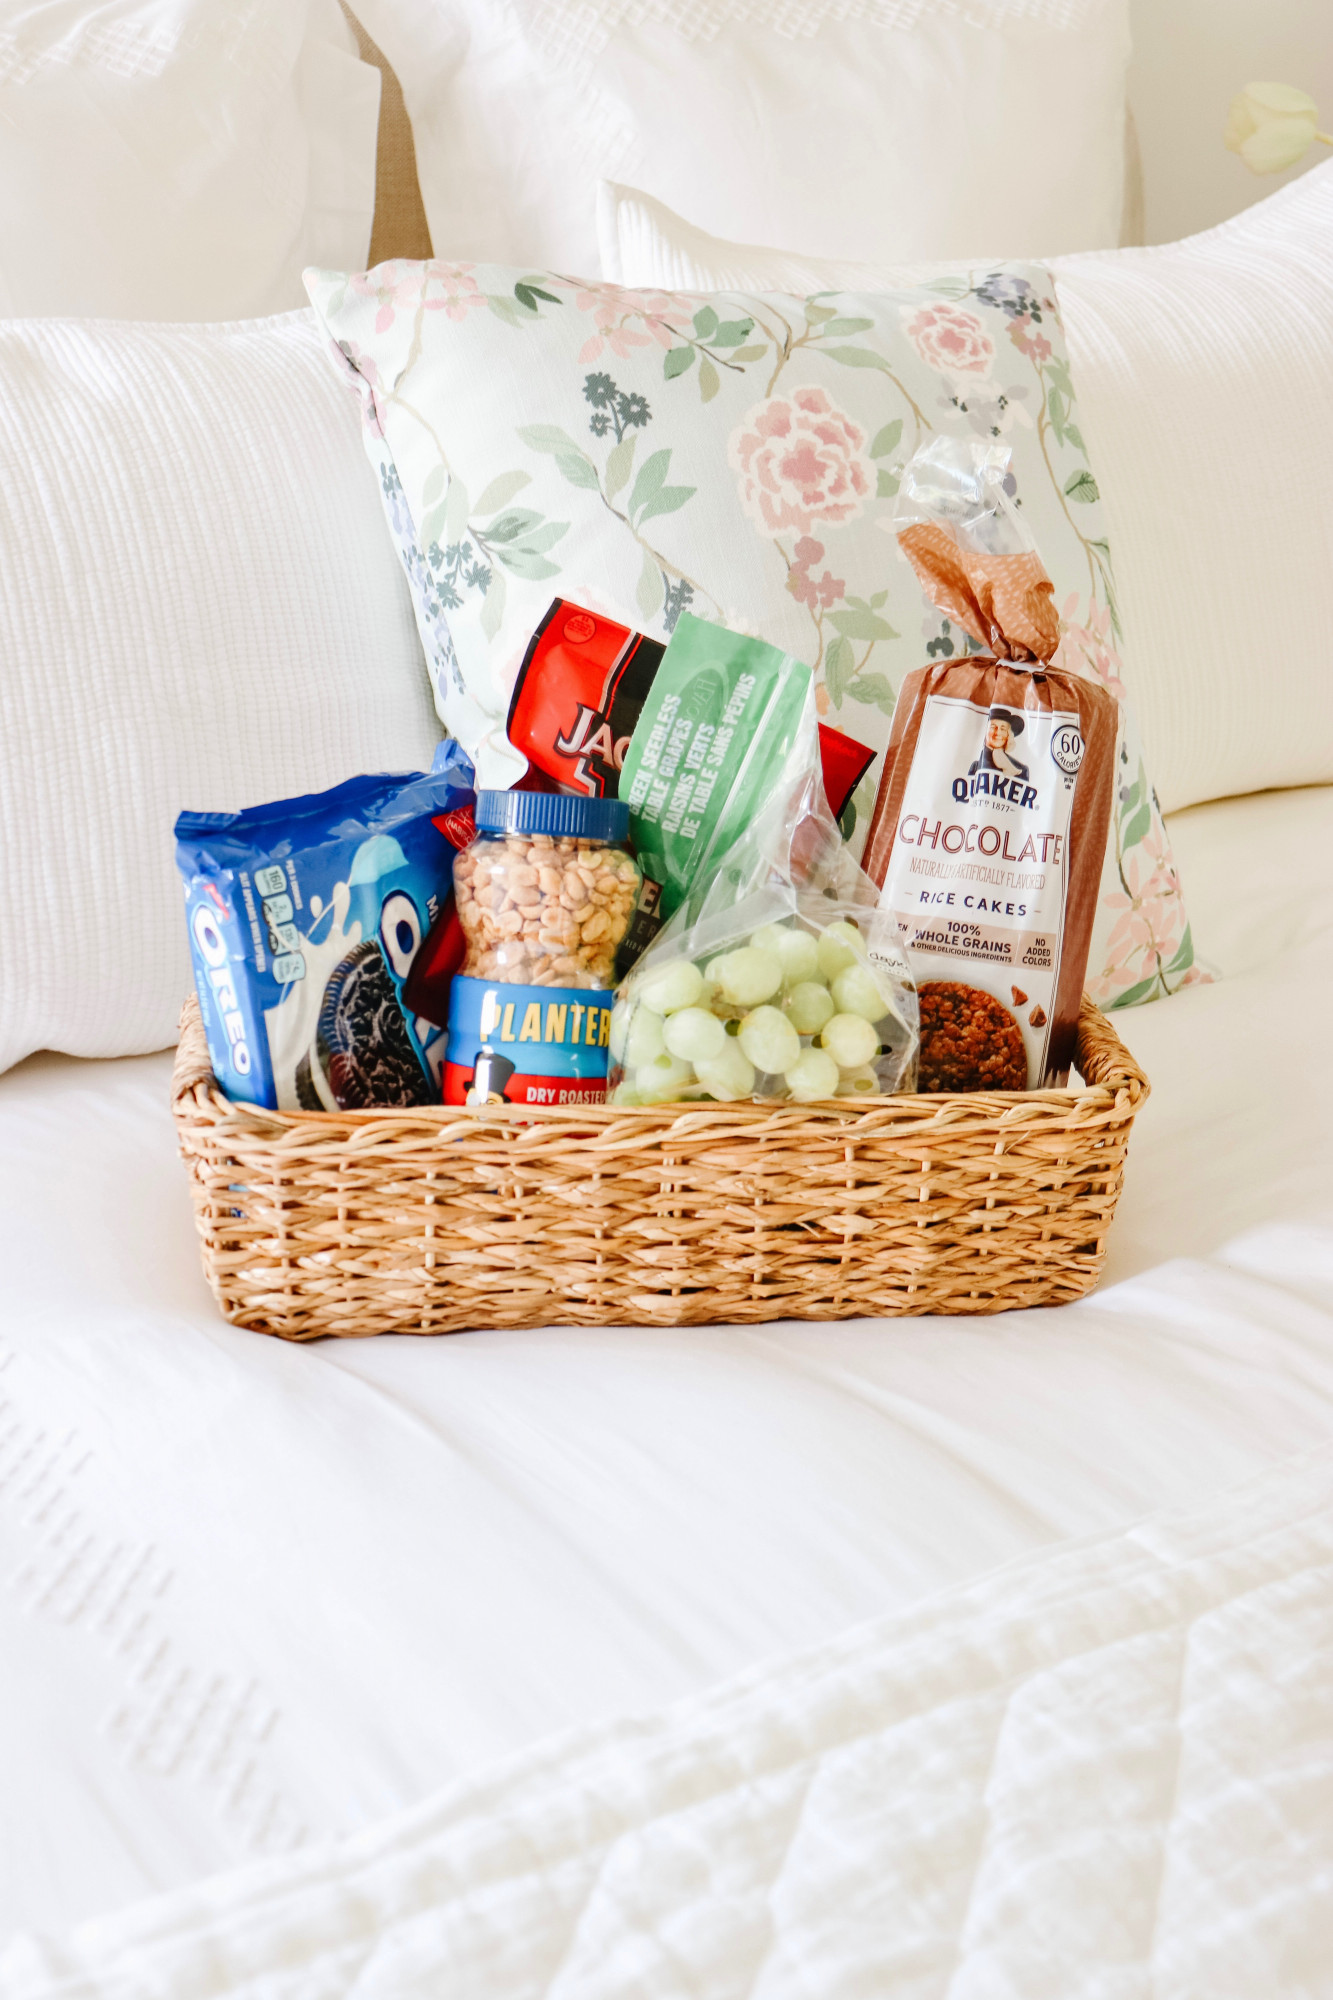 Guest Room ready food favorites